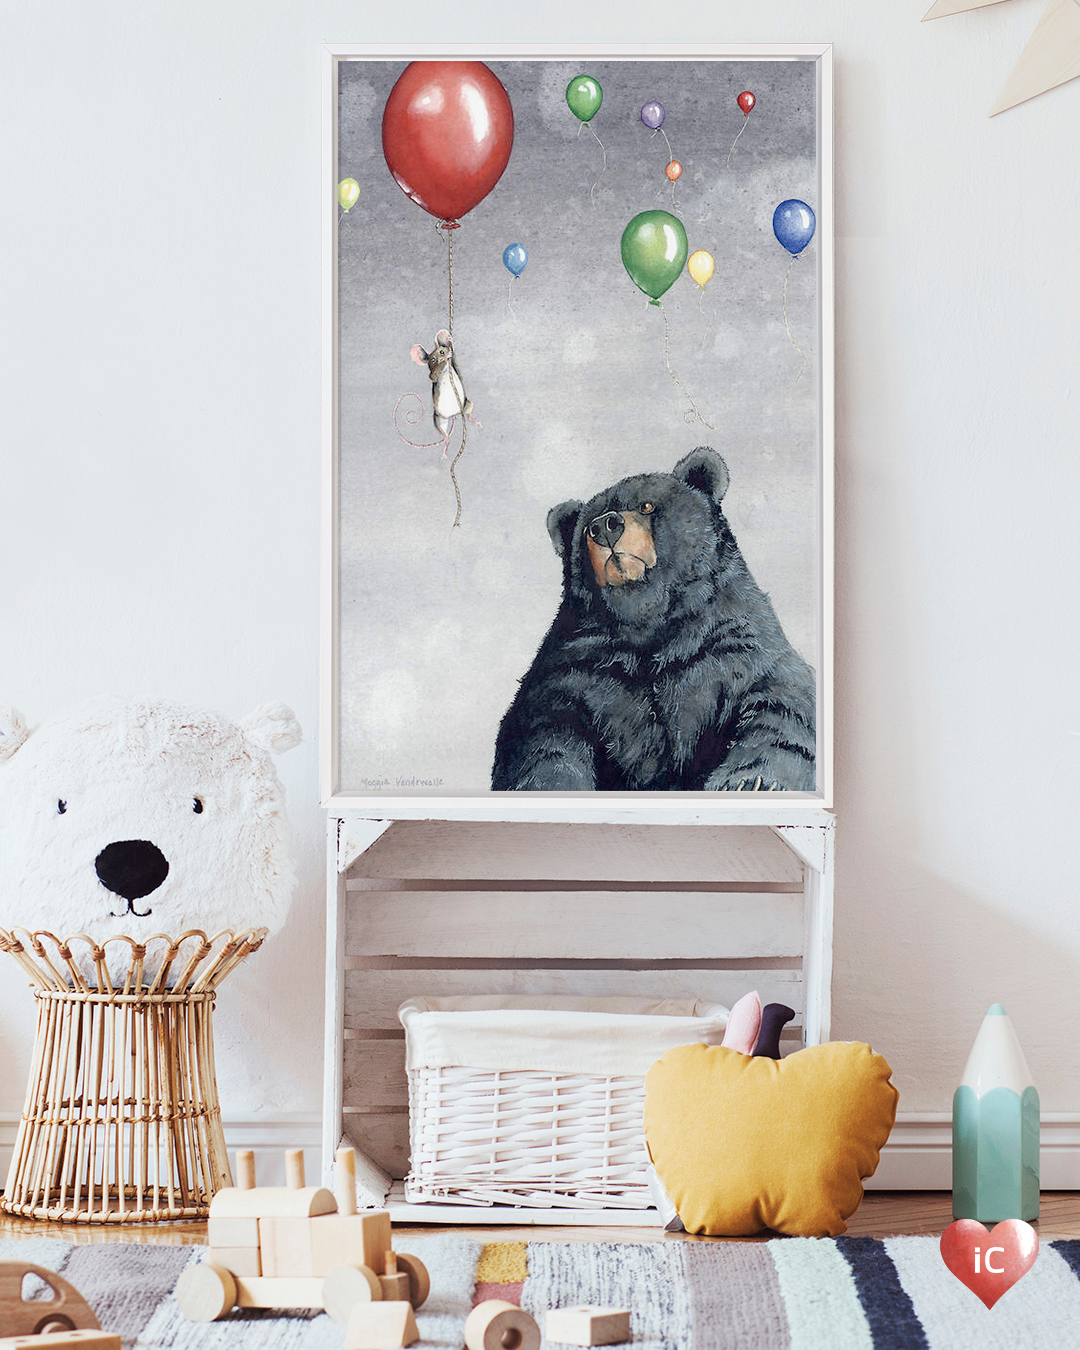 Illustration of a black bear looking at a brown mouse hanging onto a red balloon that's floating into a gray sky with other colorful balloons.